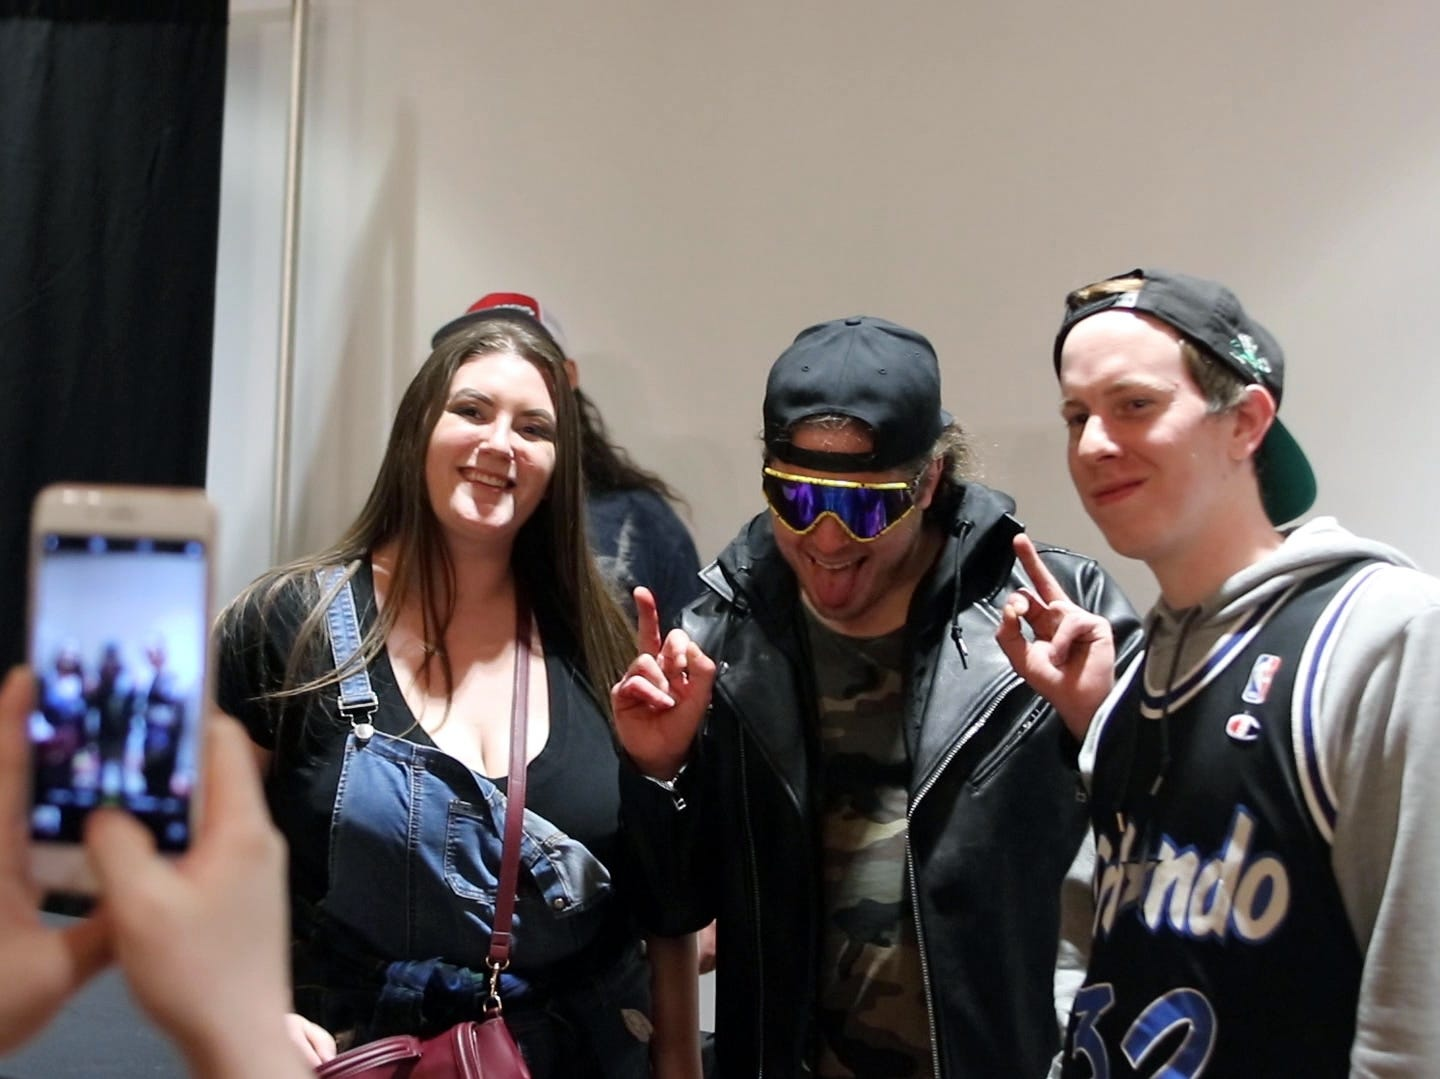 Joey Janela poses with fans during a Game Changer Wrestling Show at the Showboat Hotel in Atlantic City on Feb. 16. Janela is preparing for his comeback at the annual GCW Joey Janela's Spring Break show, held in Jersey City on April 5 and April 6, after a knee injury last year.